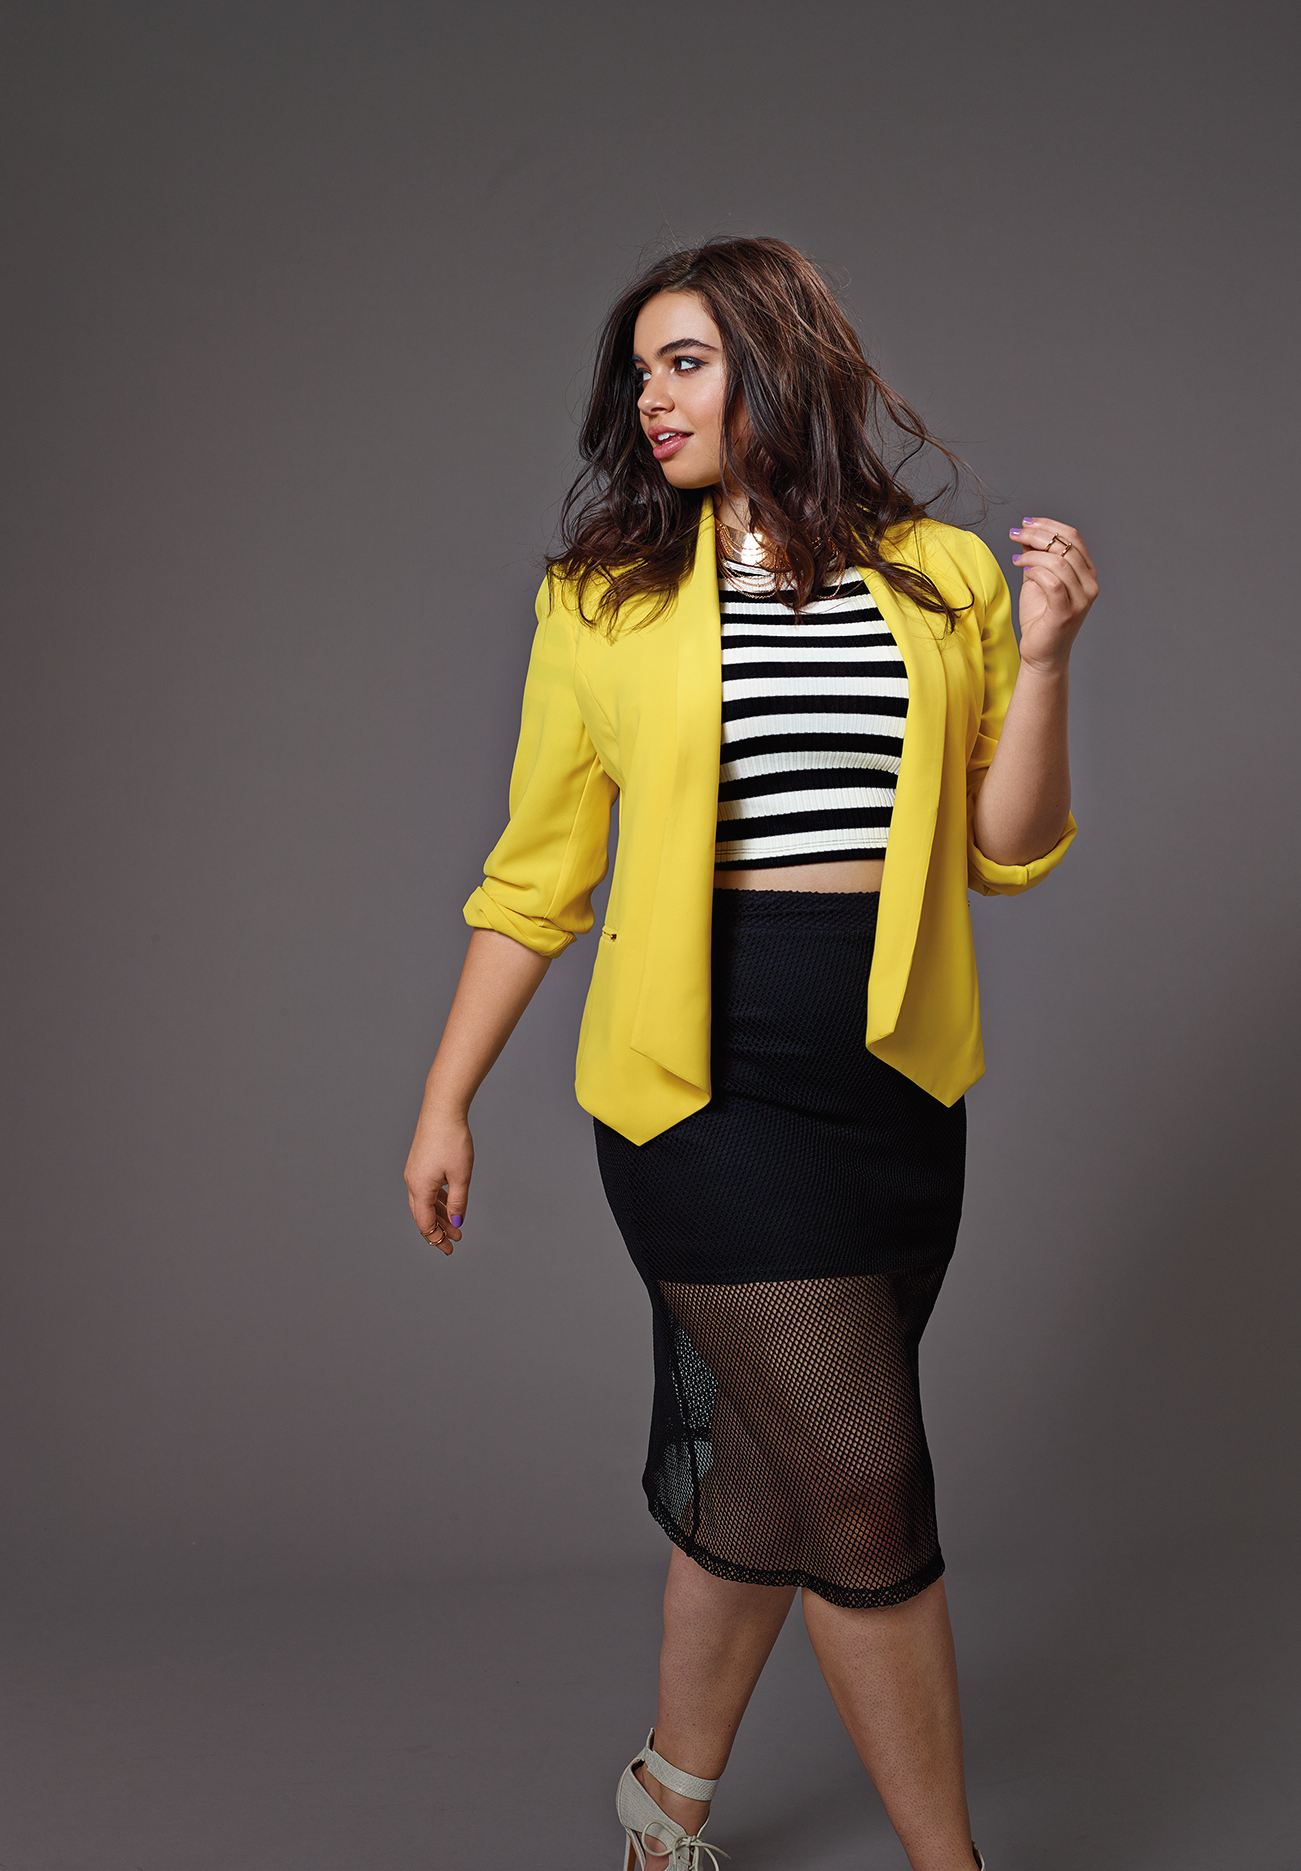 a9b4c1a6acb Charlotte Russe Launches a Plus-Size Line - Racked